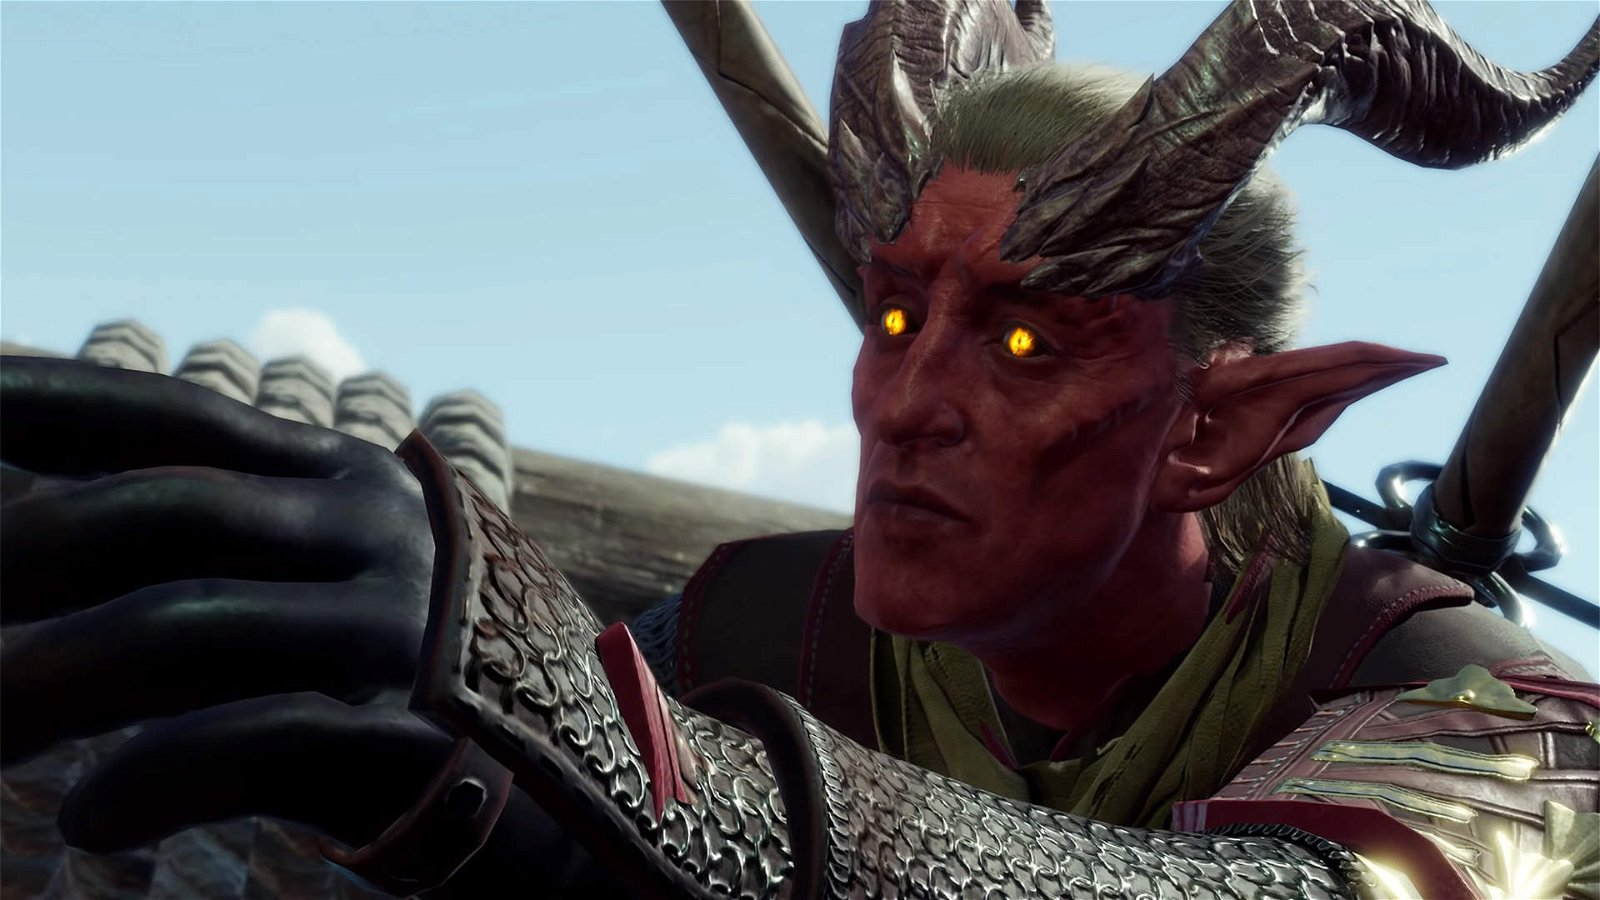 Baldur's Gate III Delayed, Misses August 2020 Early Launch 1